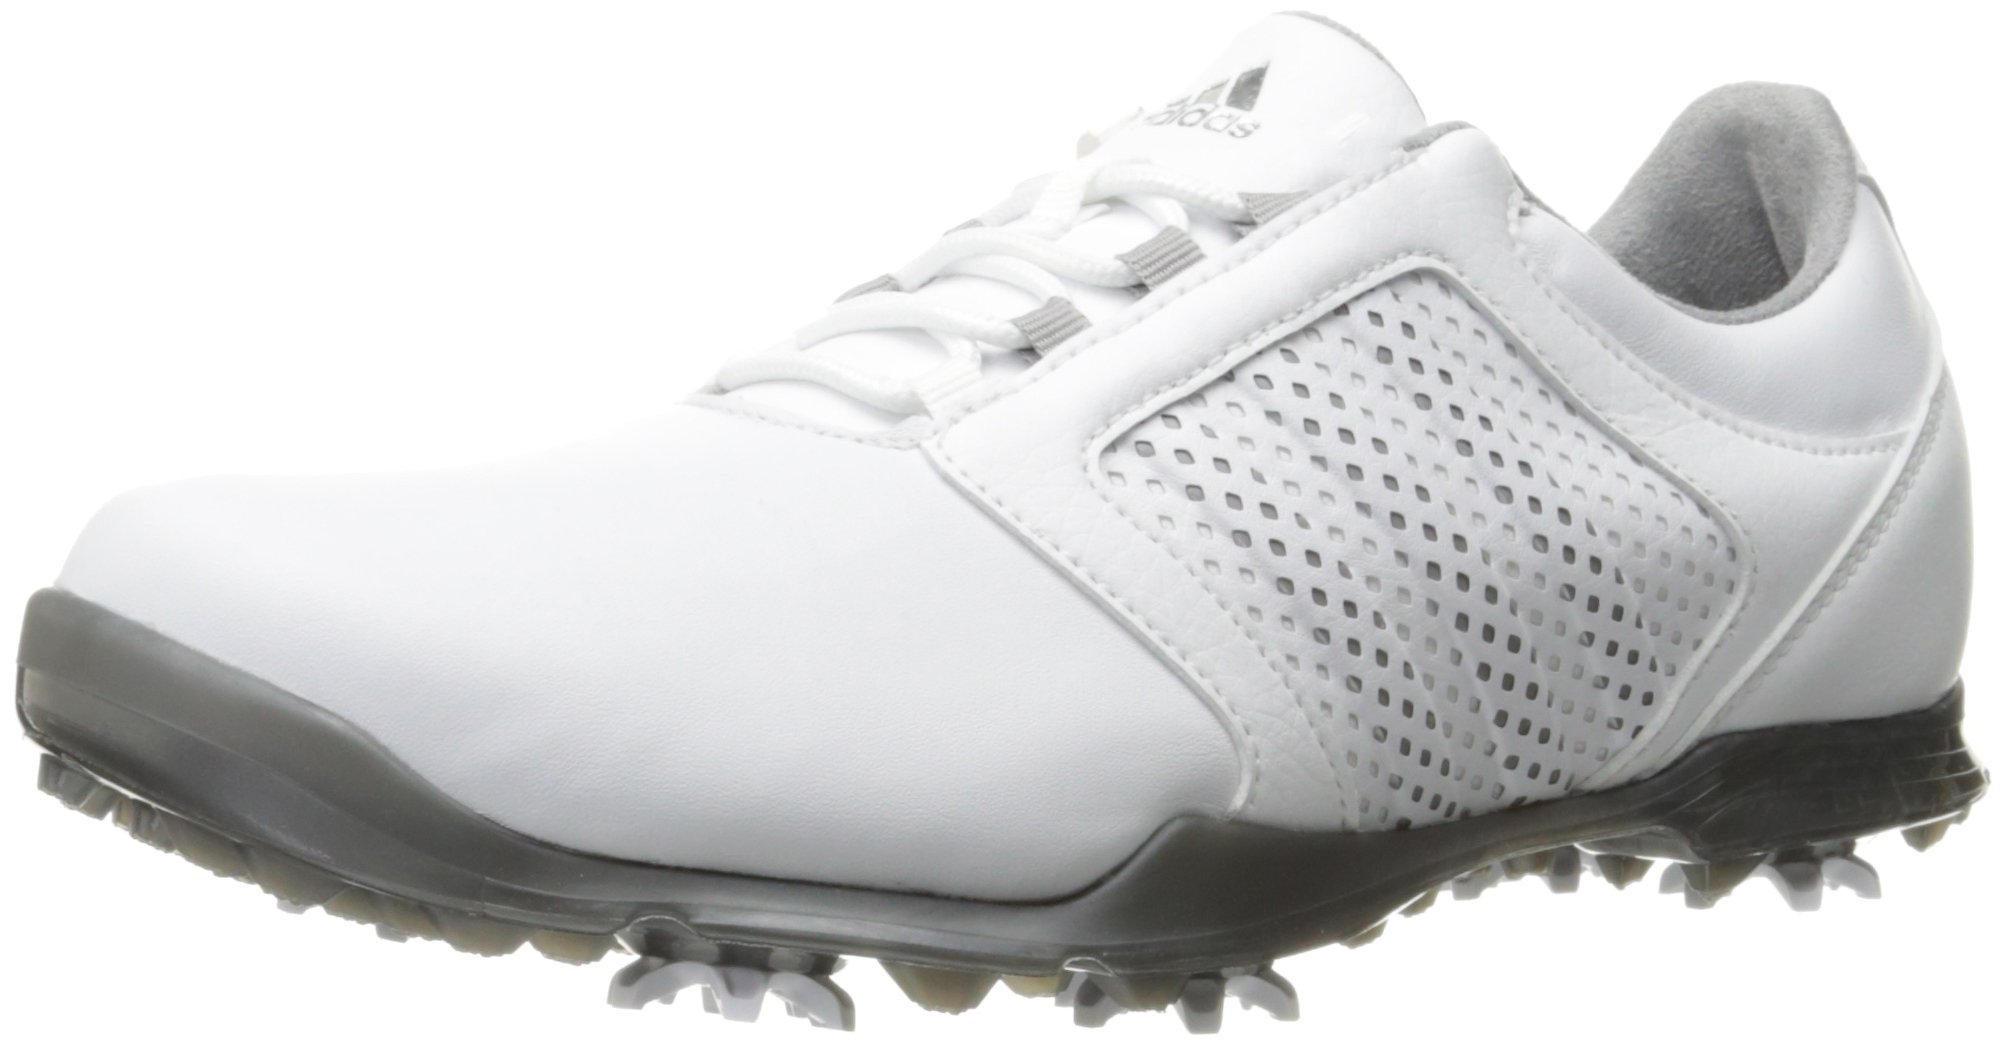 adidas Women's Adipure Tour Golf Shoe, White, 6 M US